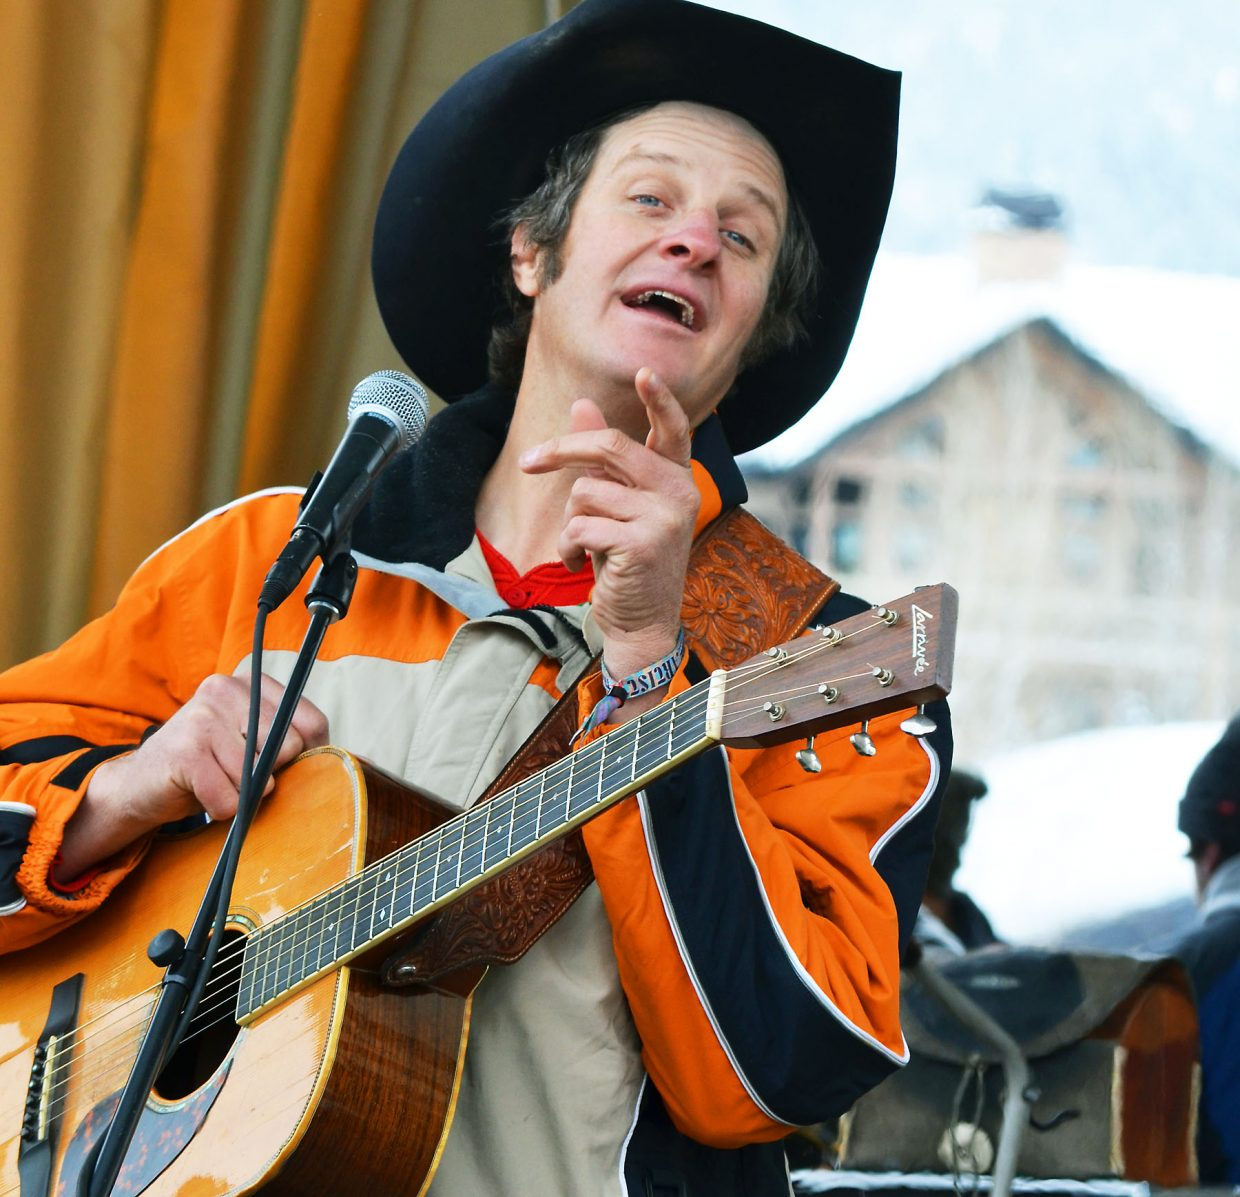 """Doug Moreland entertaines a Steamboat MusicFest audience at the base of the ski area Friday with country and western classics such as """"King of the Road."""""""